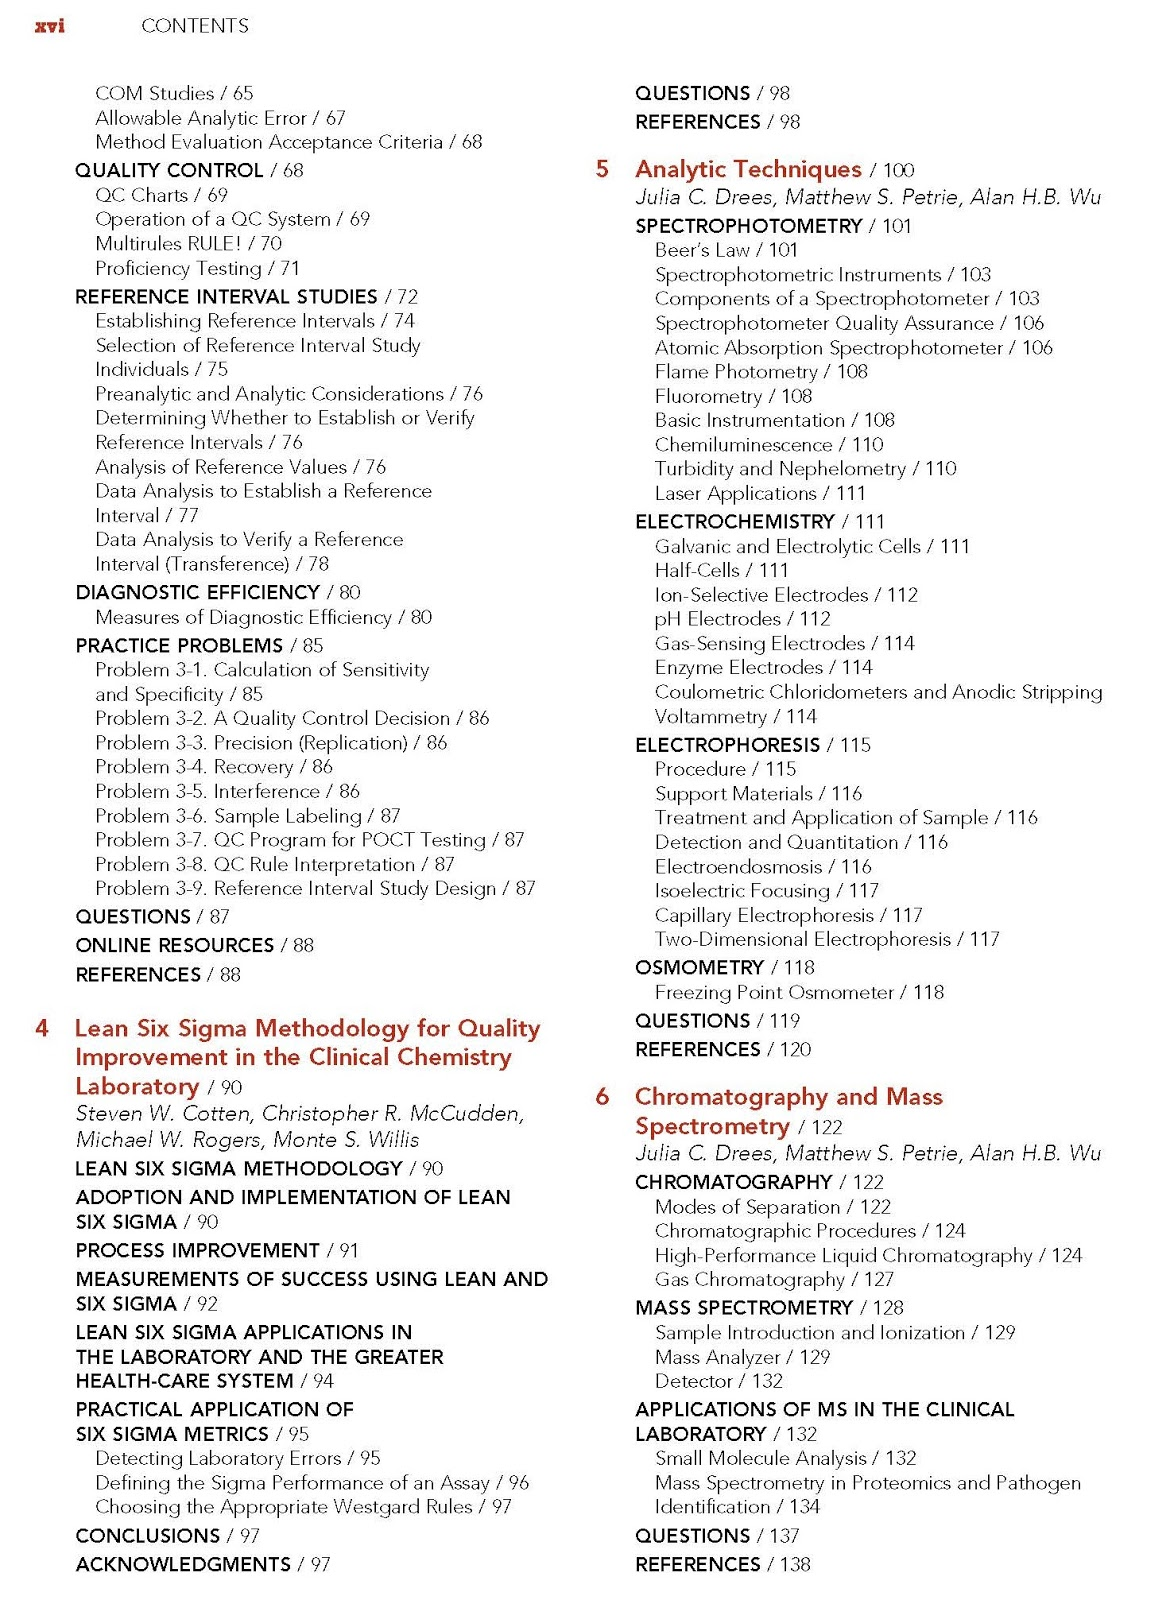 Clinical chemistry principles techniques correlations 7th with additional case studies review questions teaching resources teaching tips additional references and teaching aids for instructors and students fandeluxe Gallery